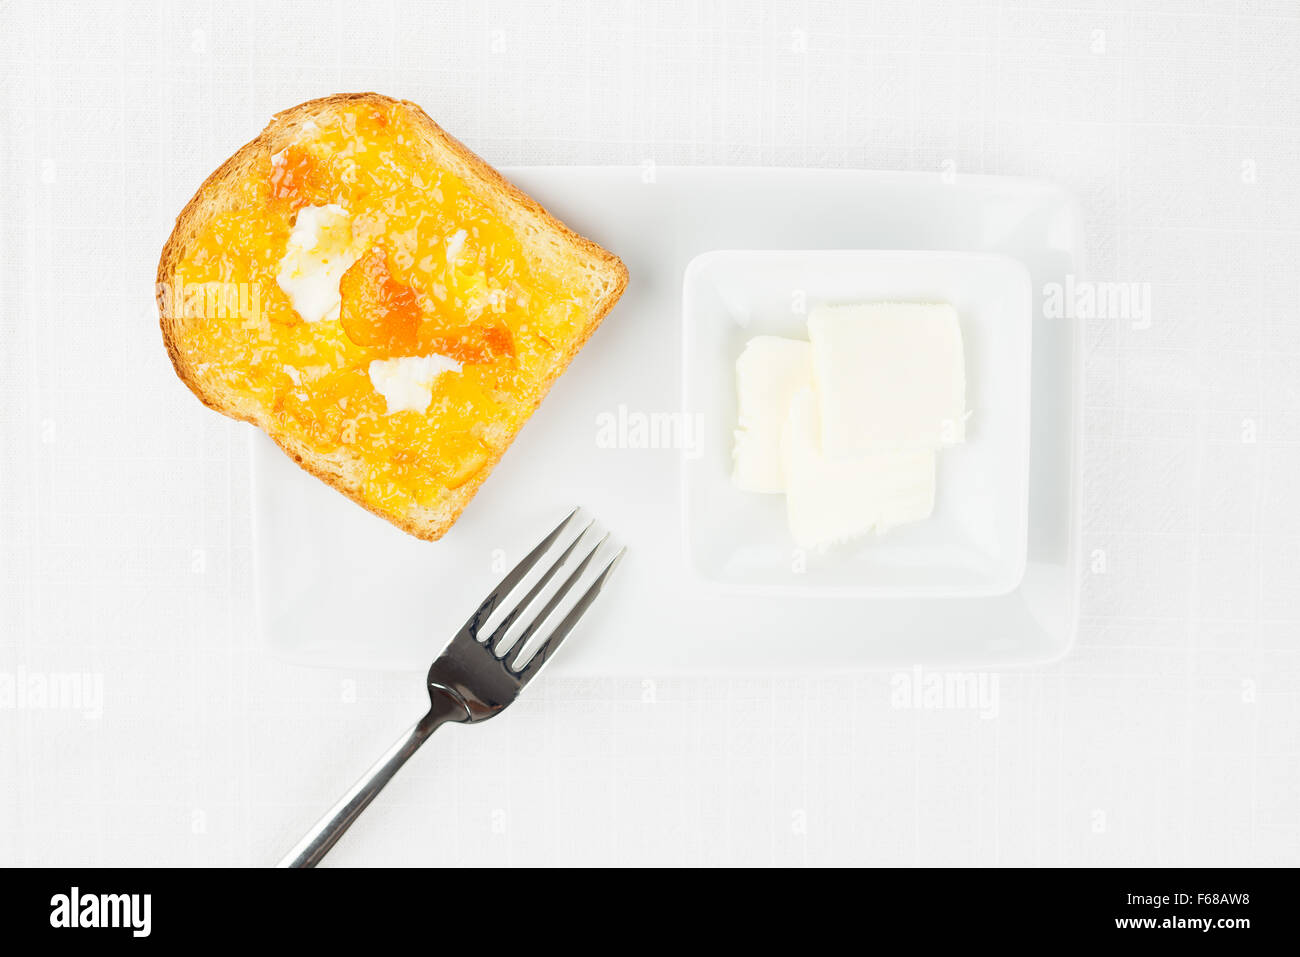 French toast with spread bitter orange marmalade or jam with candied peel, butter curls, fork and dishware on white - Stock Image